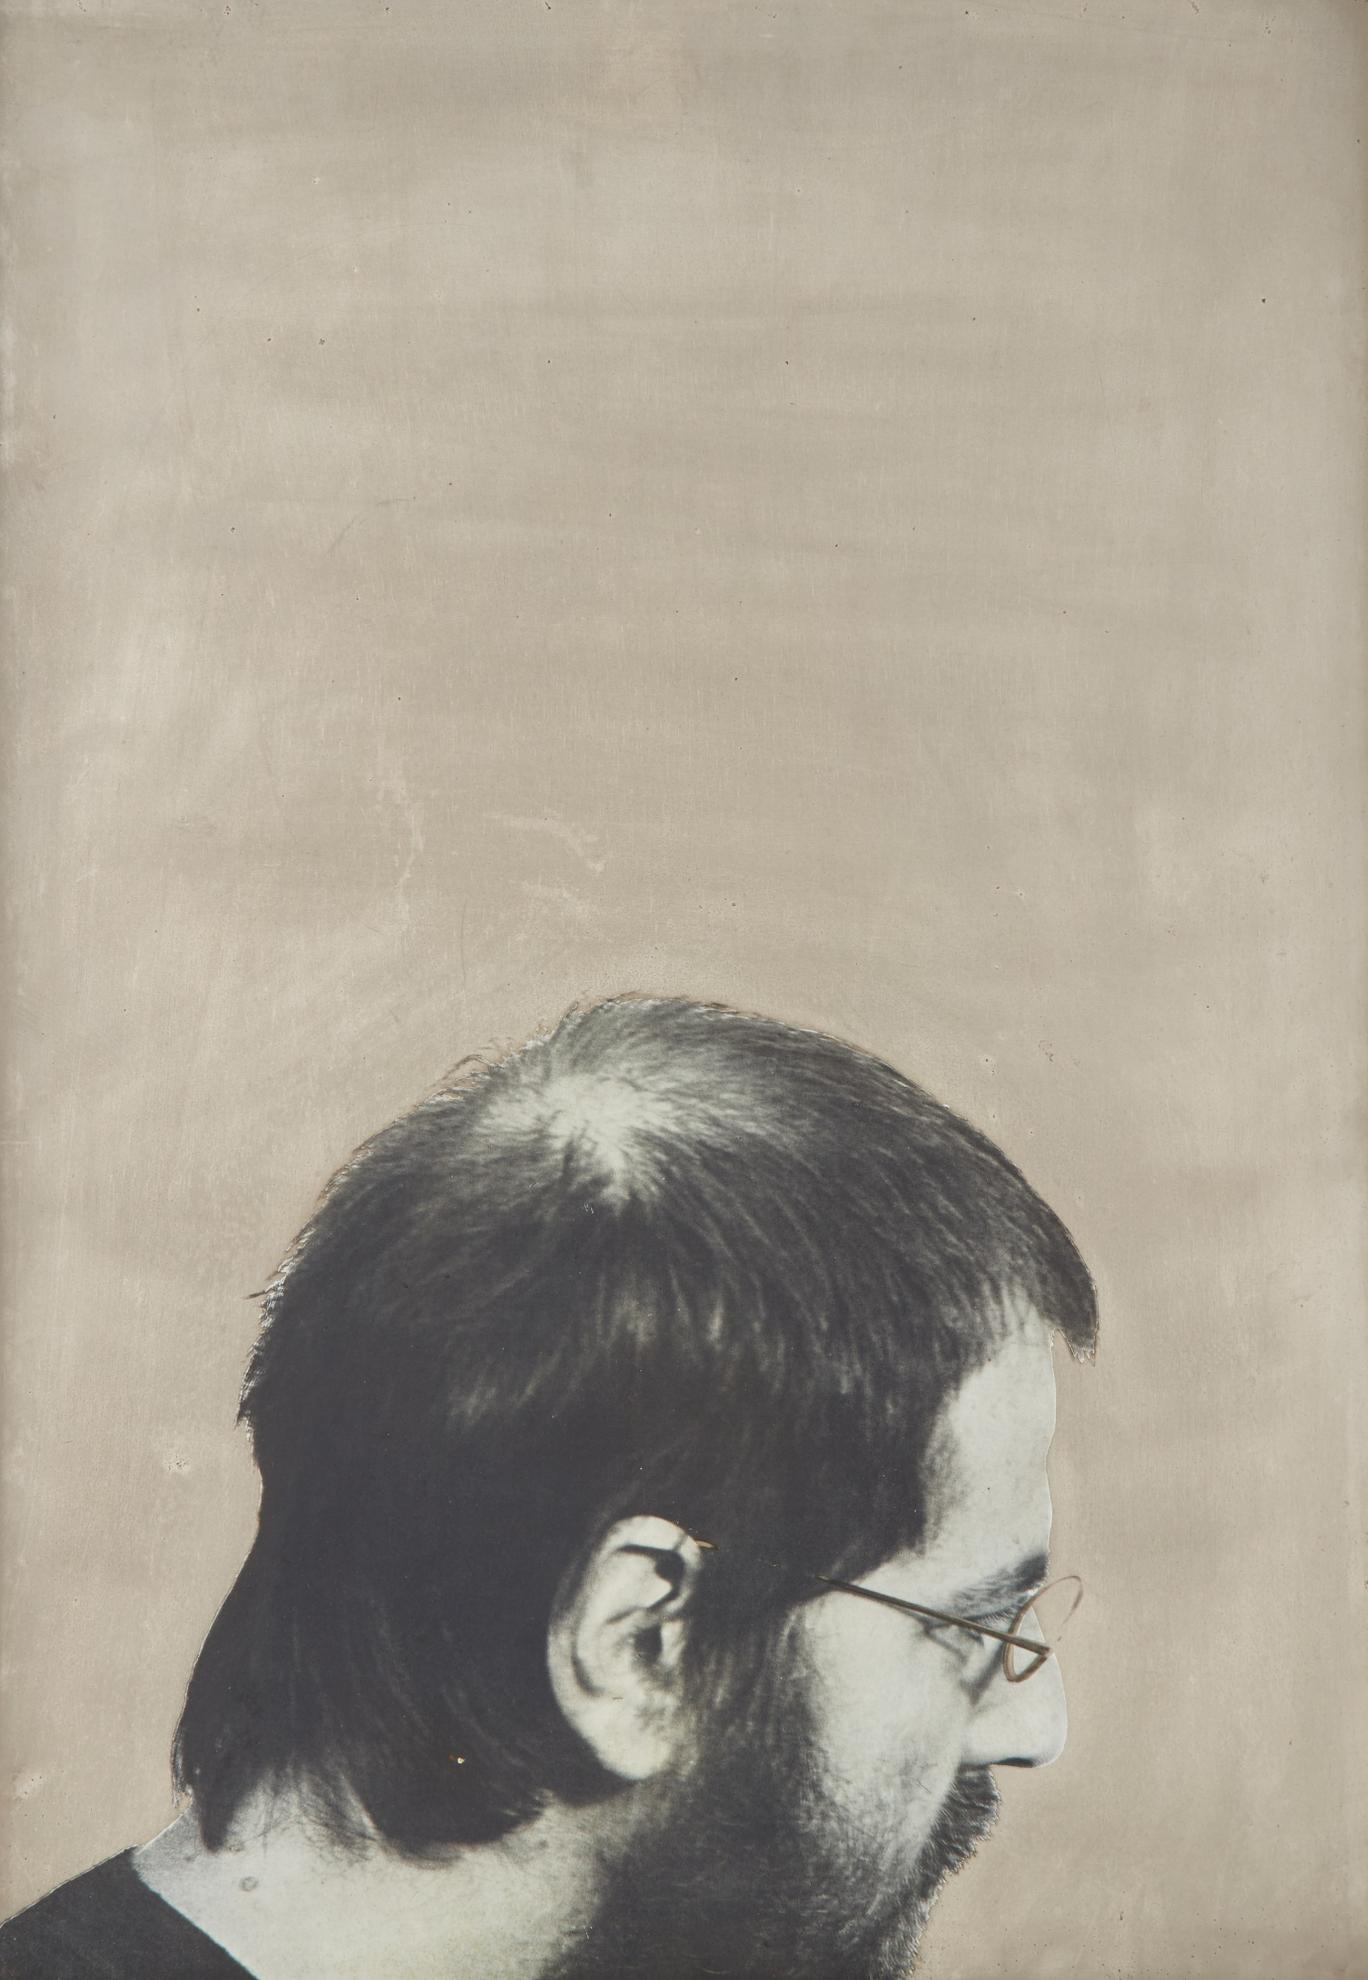 Michelangelo Pistoletto-Self-Portrait-1970